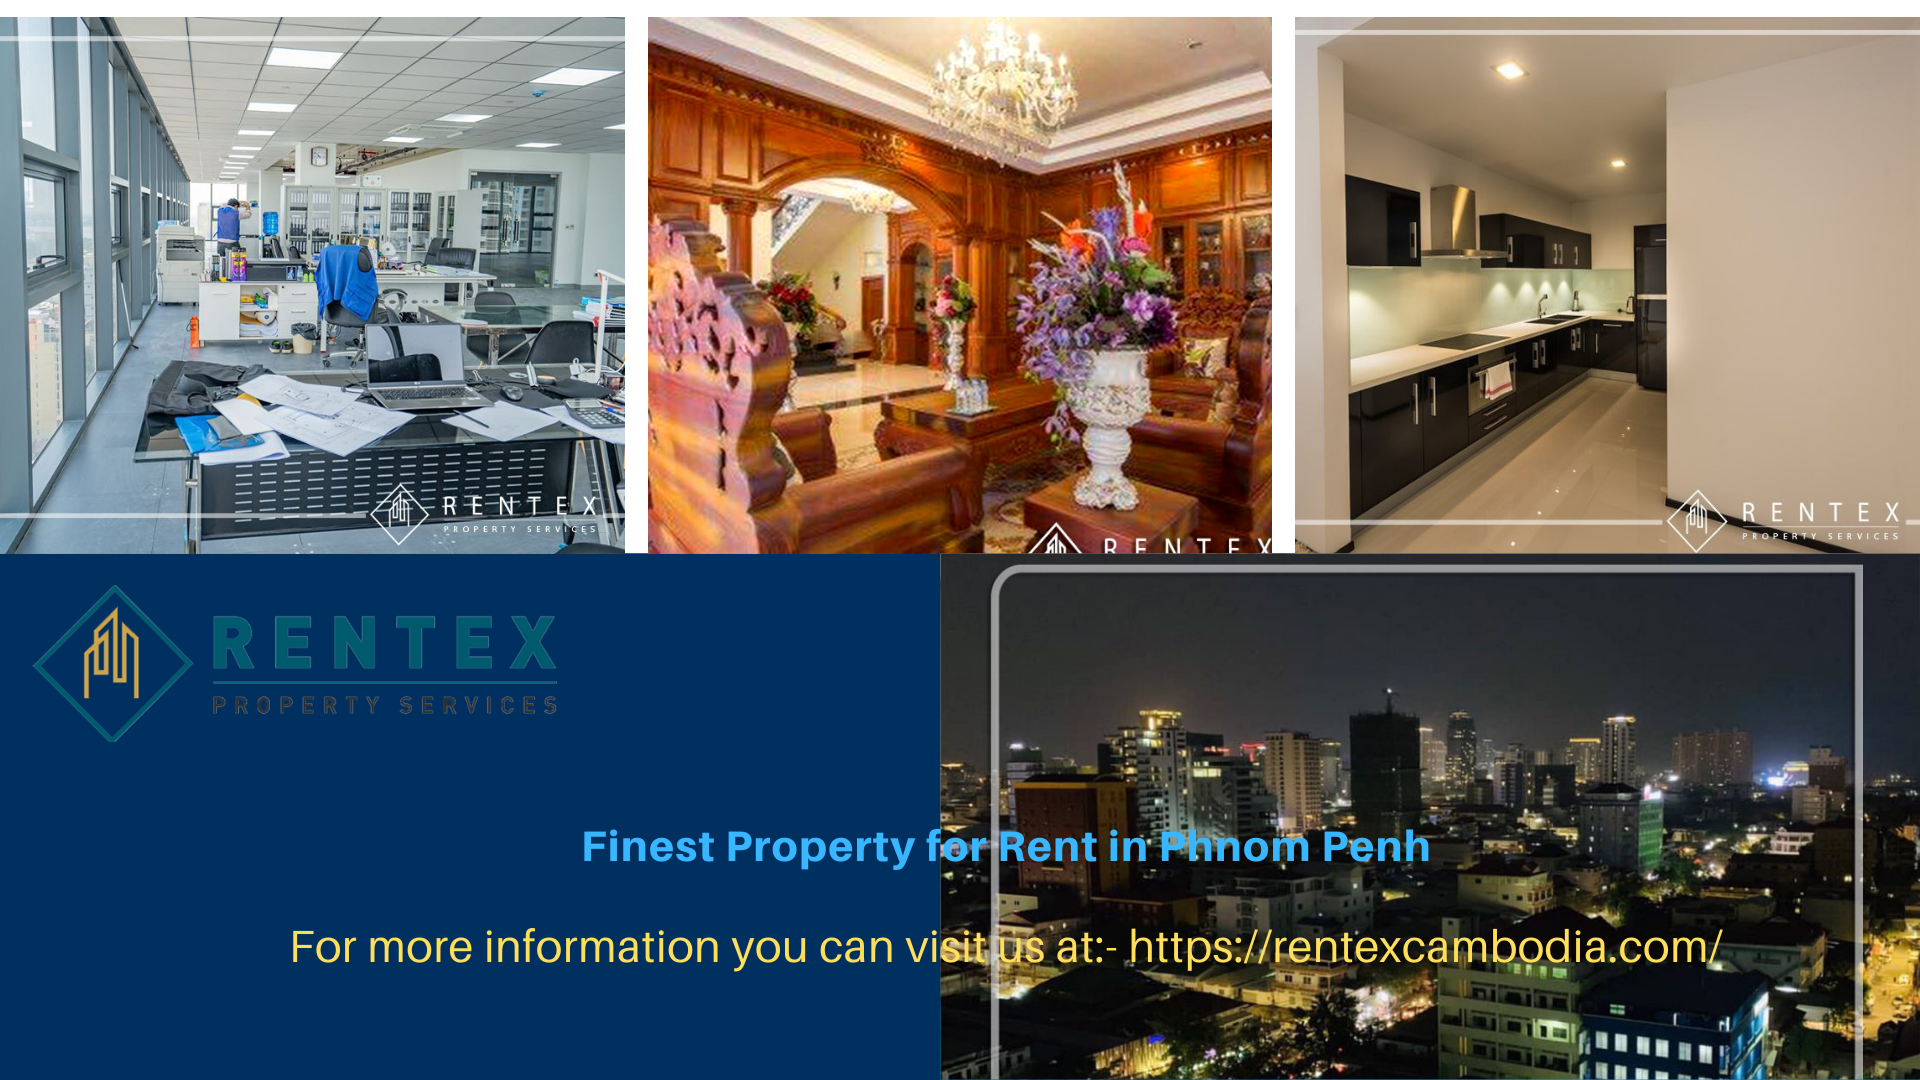 Searching Out For Quality Property For Rent In Phnom Penh In 2020 Property For Rent Commercial Property For Rent Condos For Rent